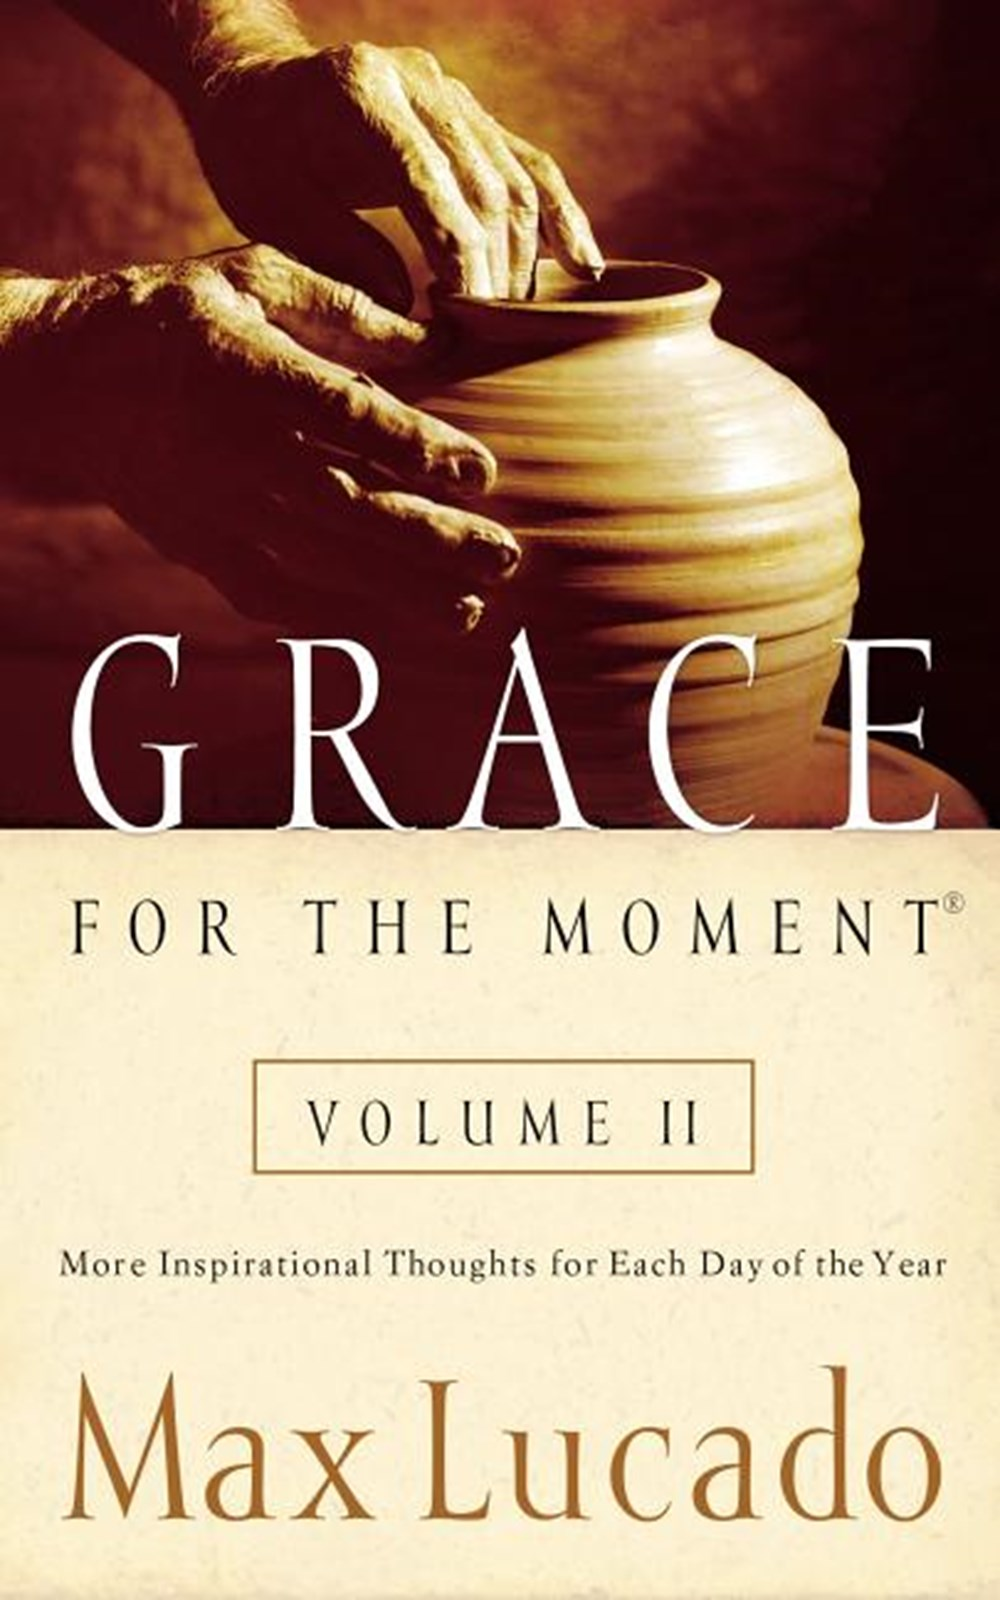 Grace for the Moment, Volume 2 More Inspirational Thoughts for Each Day of the Year